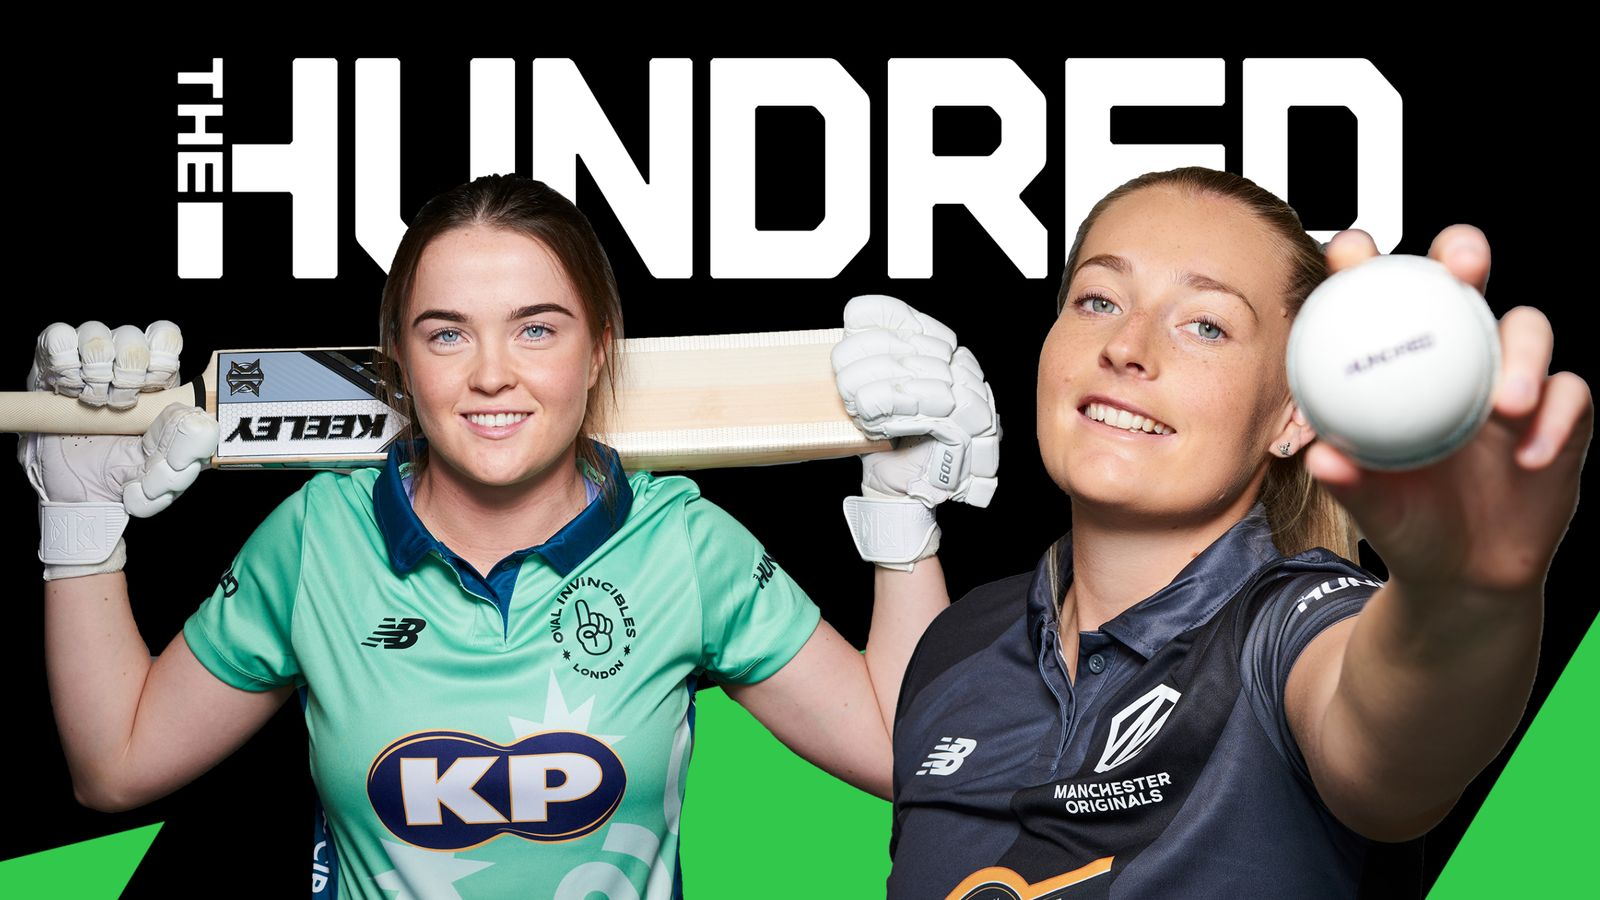 The Hundred to launch with historic women's match